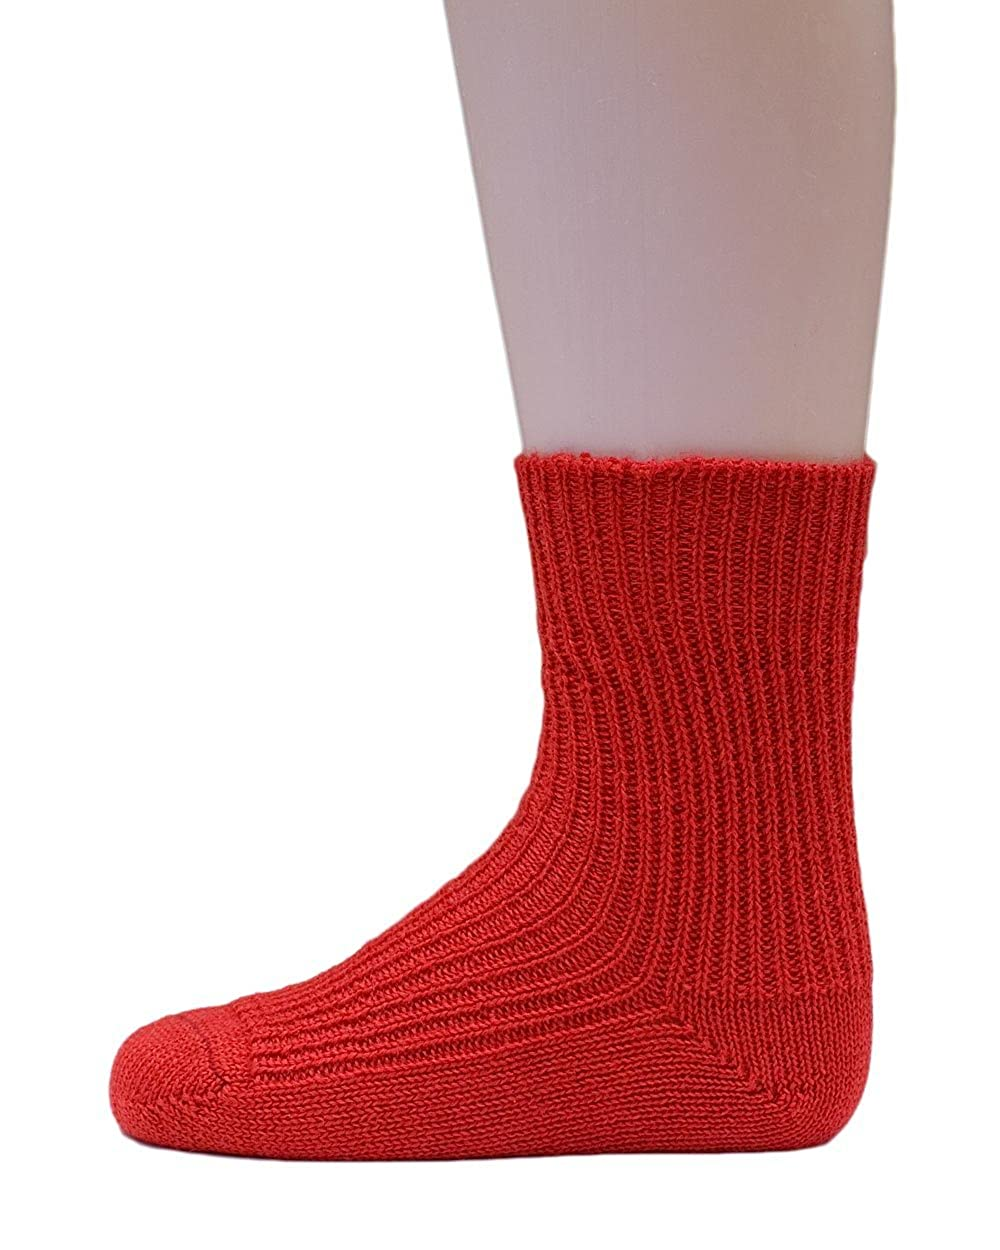 Hirsch Natur, Ribbed Socks for Babies and Children,100% Organic Wool 781